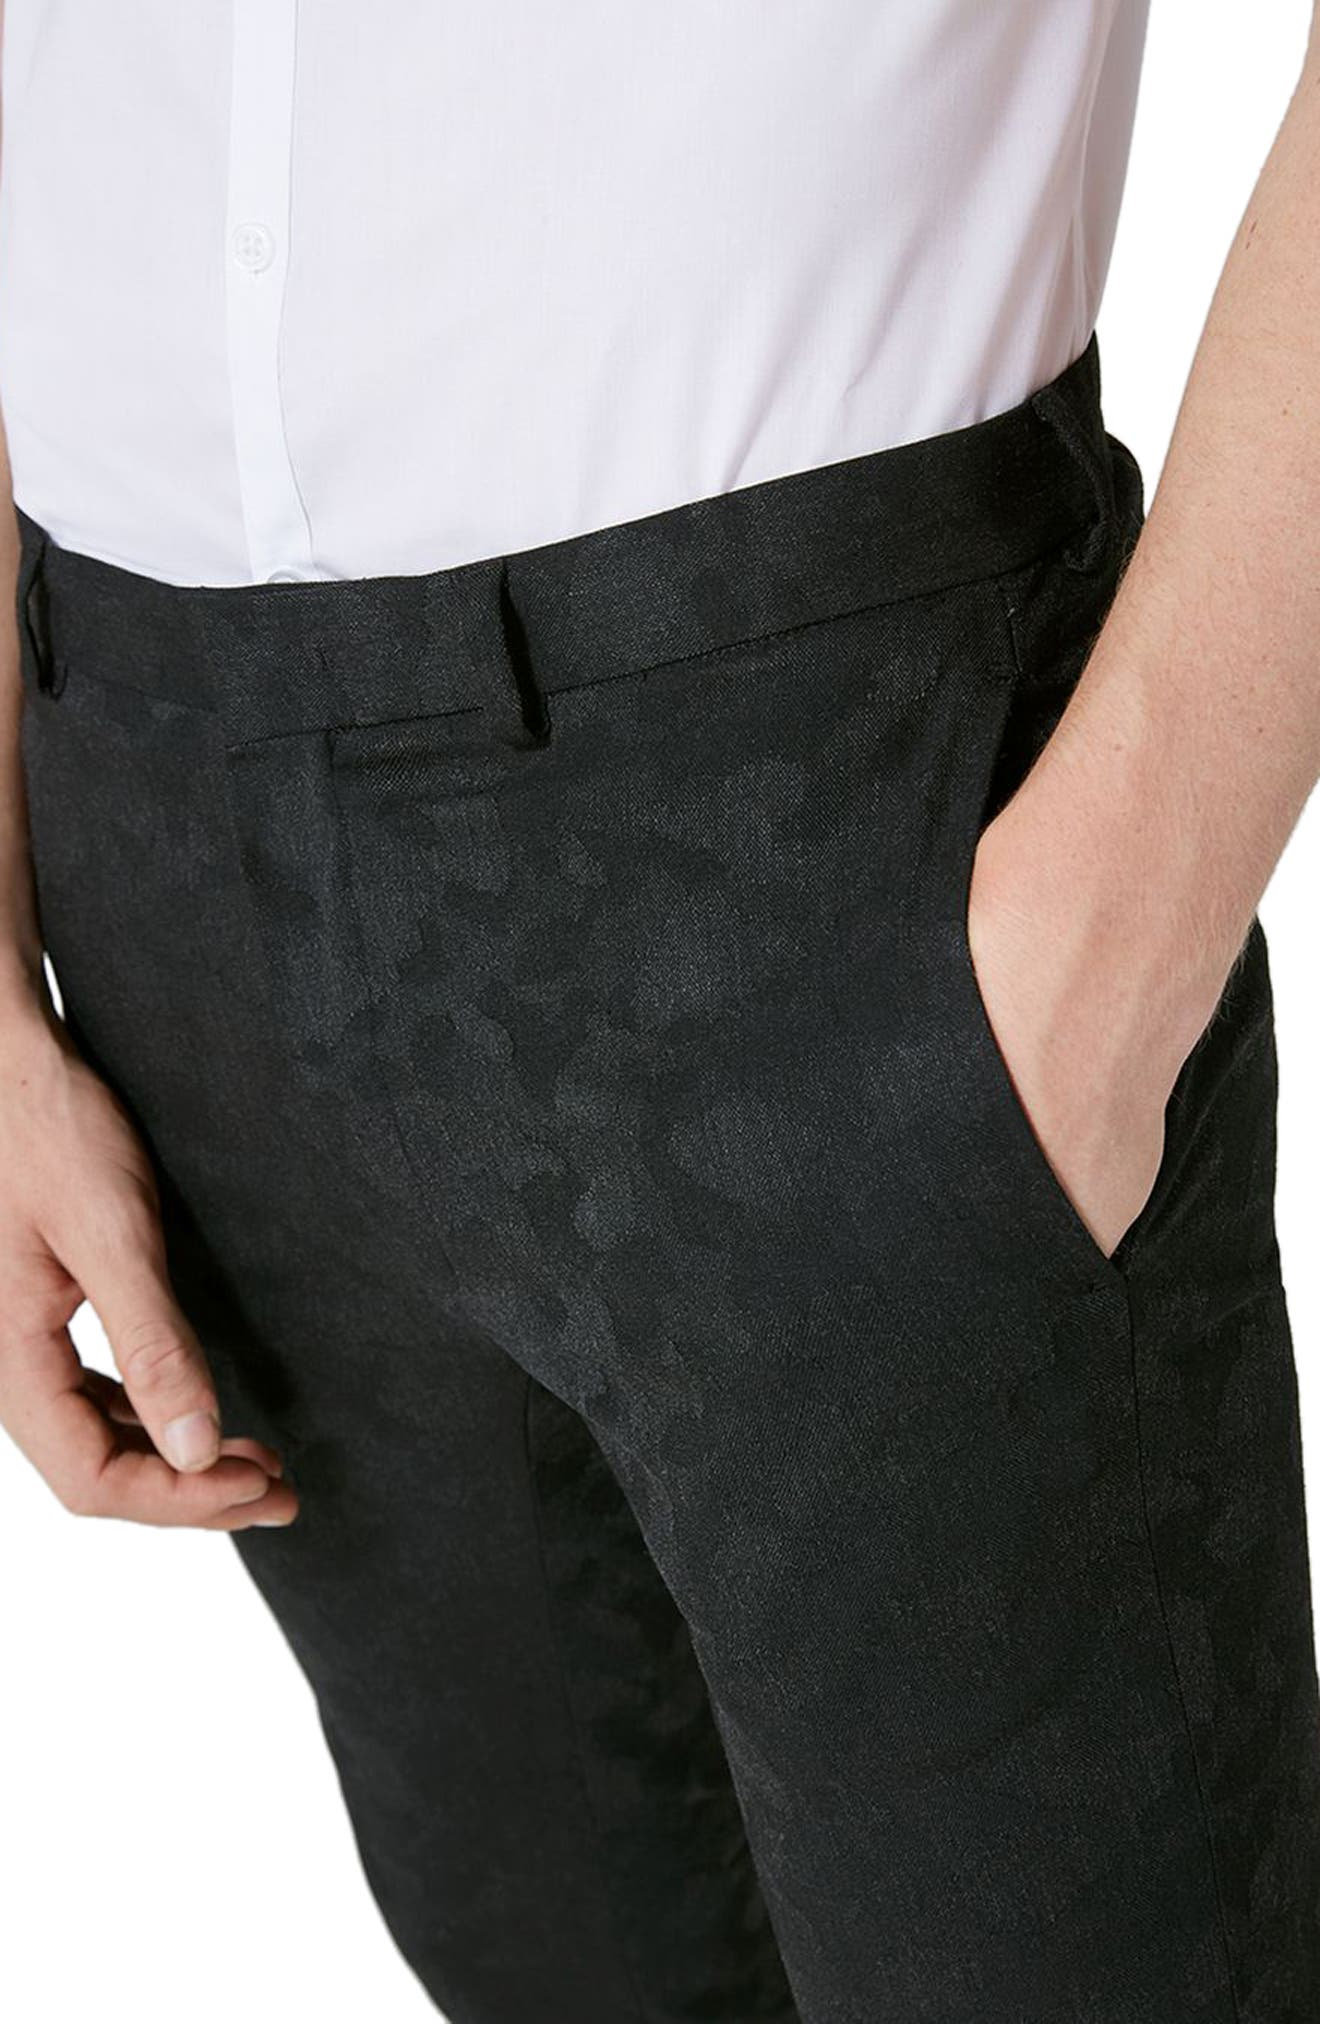 Shadow Camo Ultra Skinny Suit Trousers,                             Alternate thumbnail 3, color,